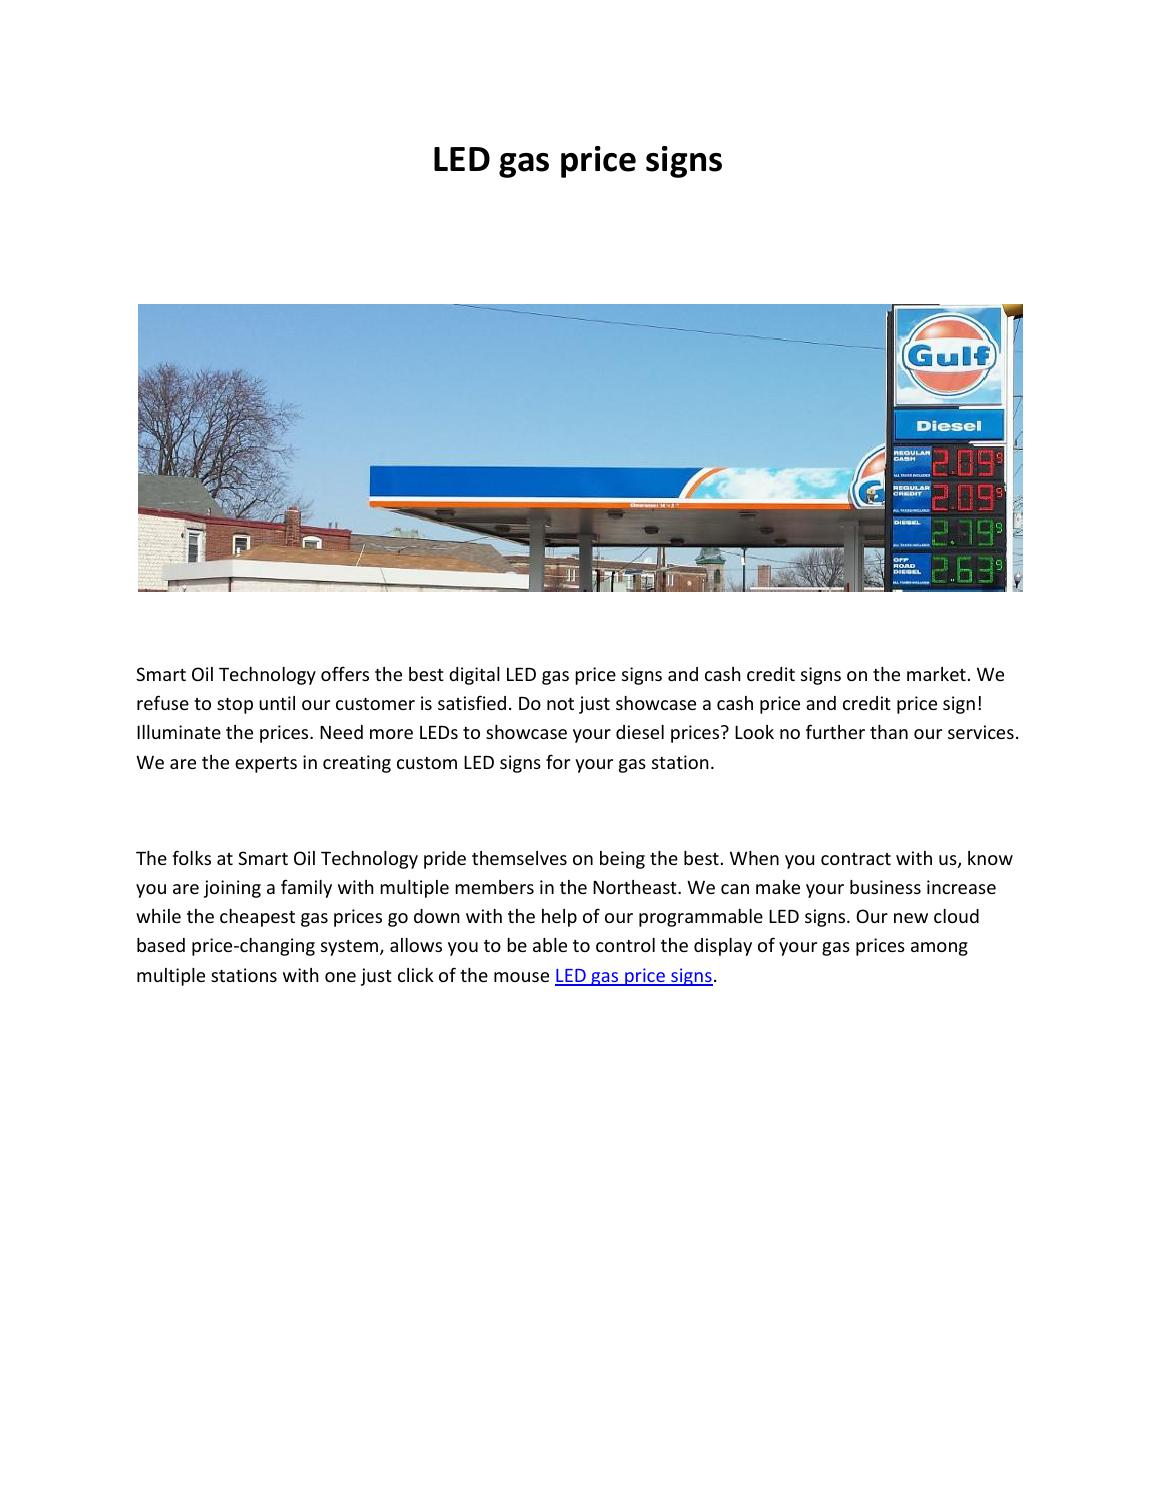 Led gas price signs by Stavin Bobby - issuu